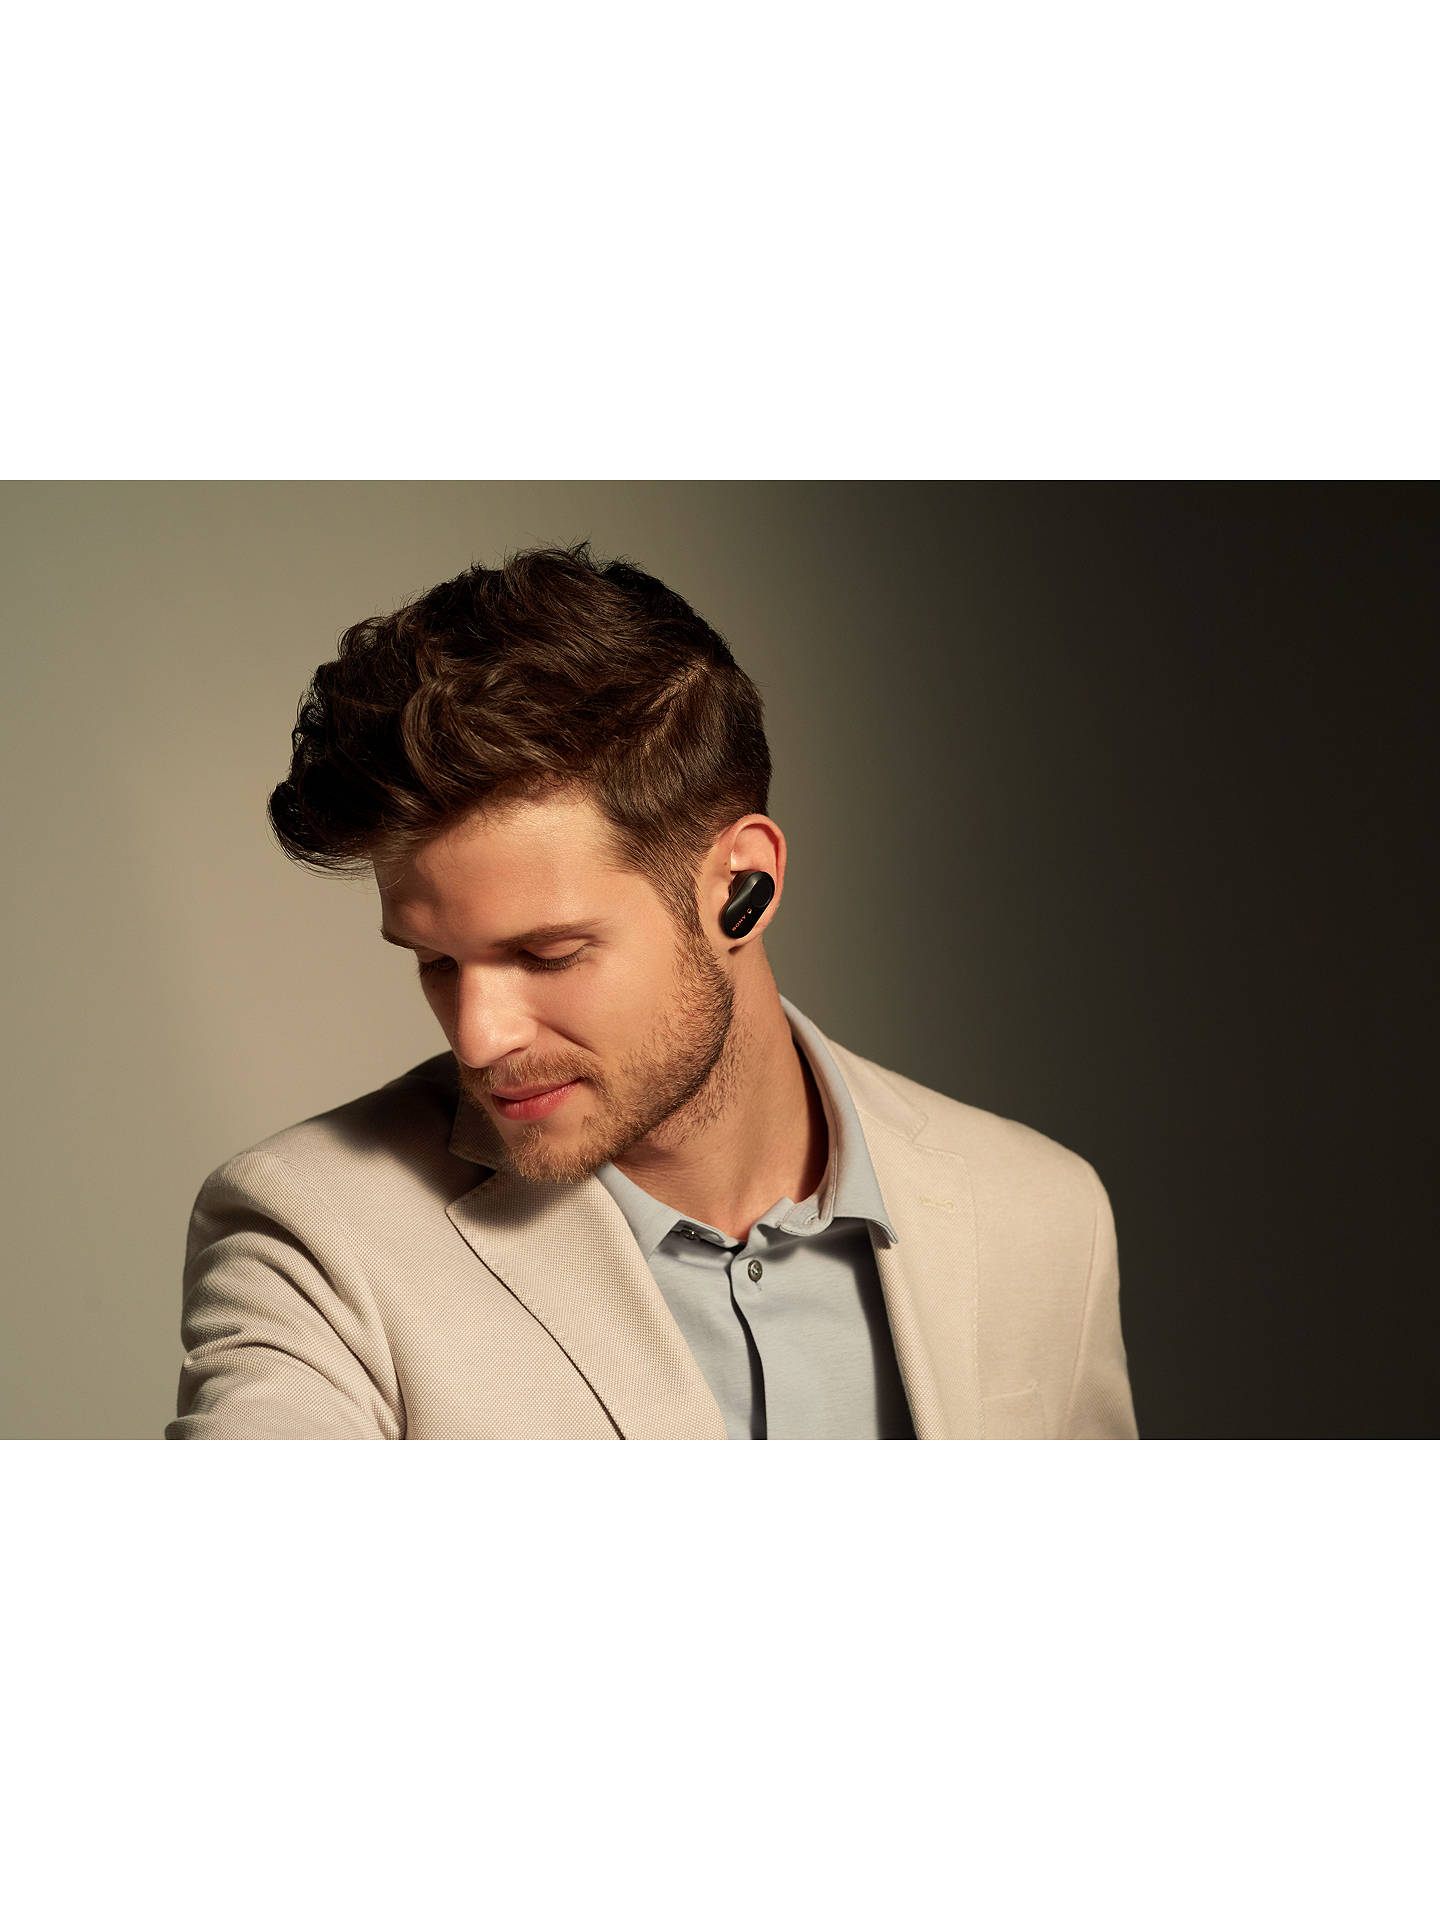 Buy Sony WF-1000XM3 Noise Cancelling True Wireless Bluetooth NFC In-Ear Headphones with Mic/Remote, Black Online at johnlewis.com